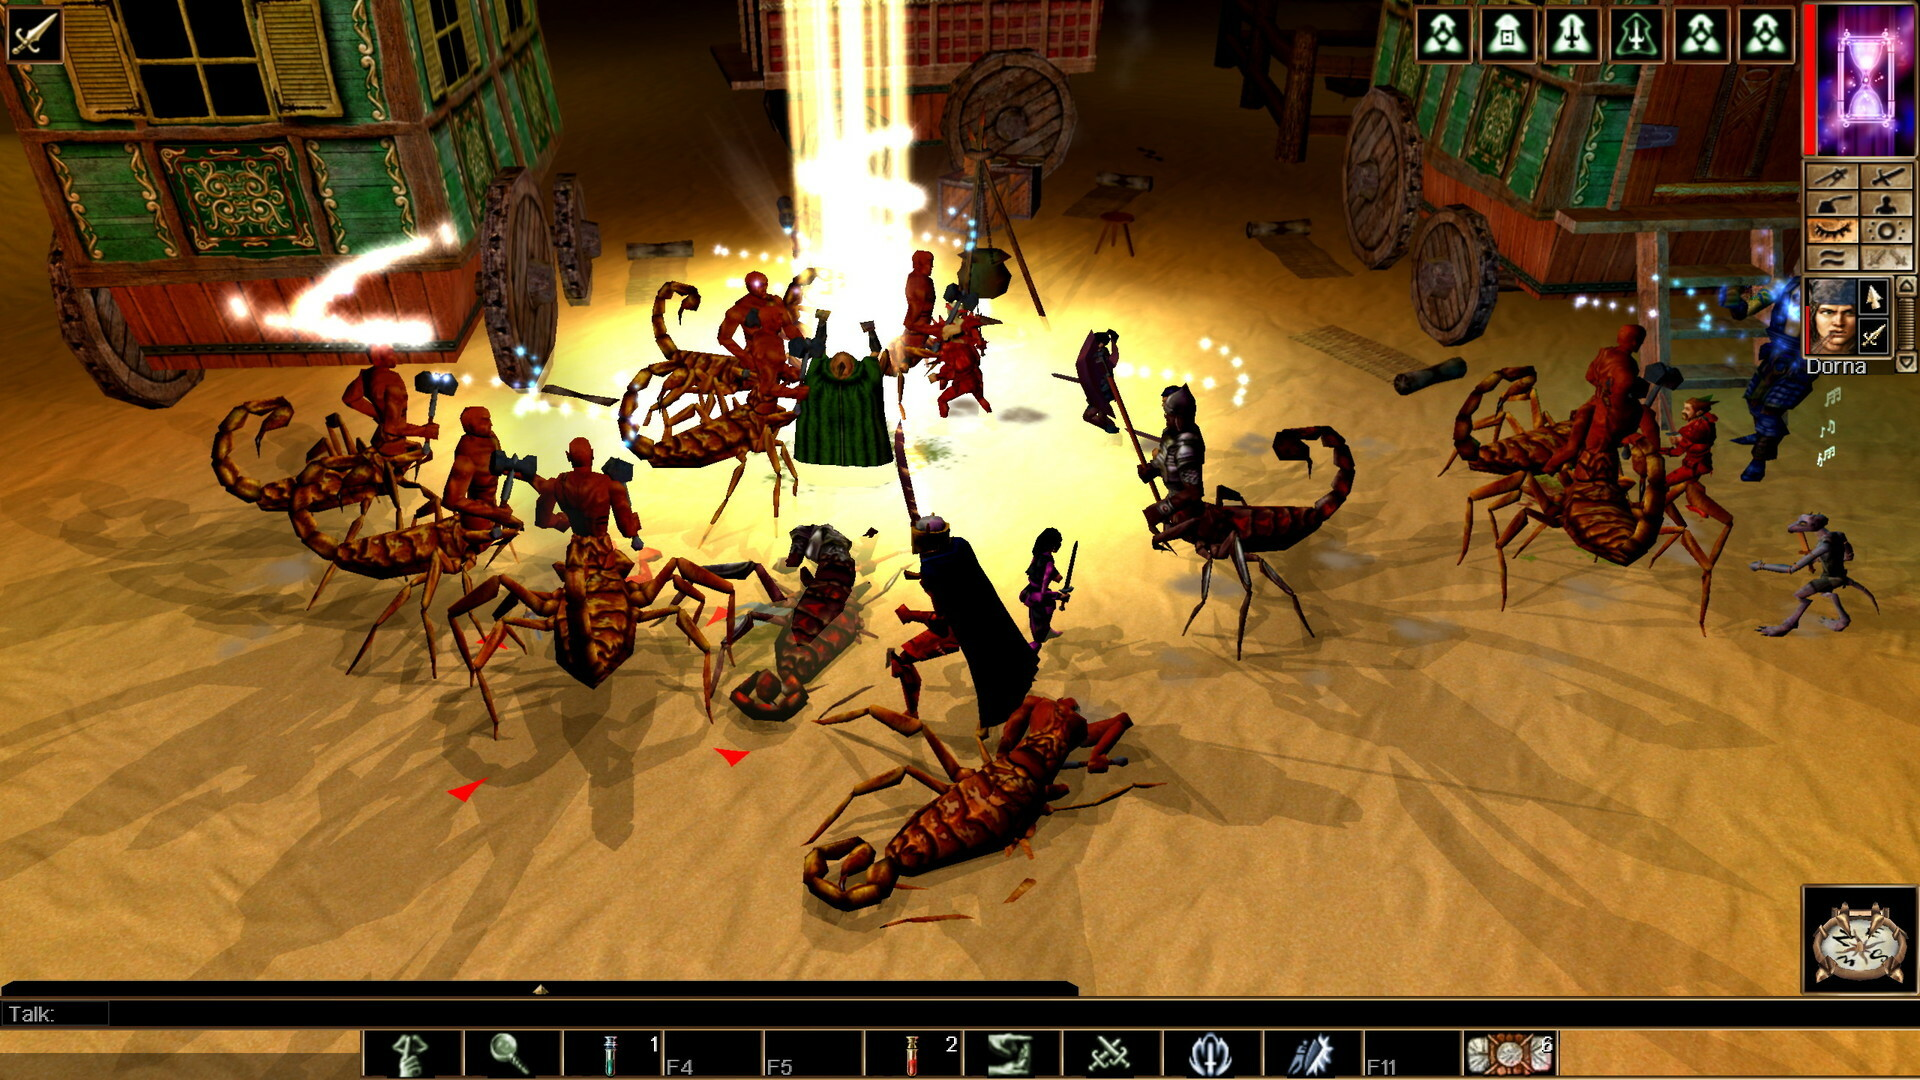 Neverwinter Nights: Enhanced Edition Digital Deluxe Edition screenshot 3